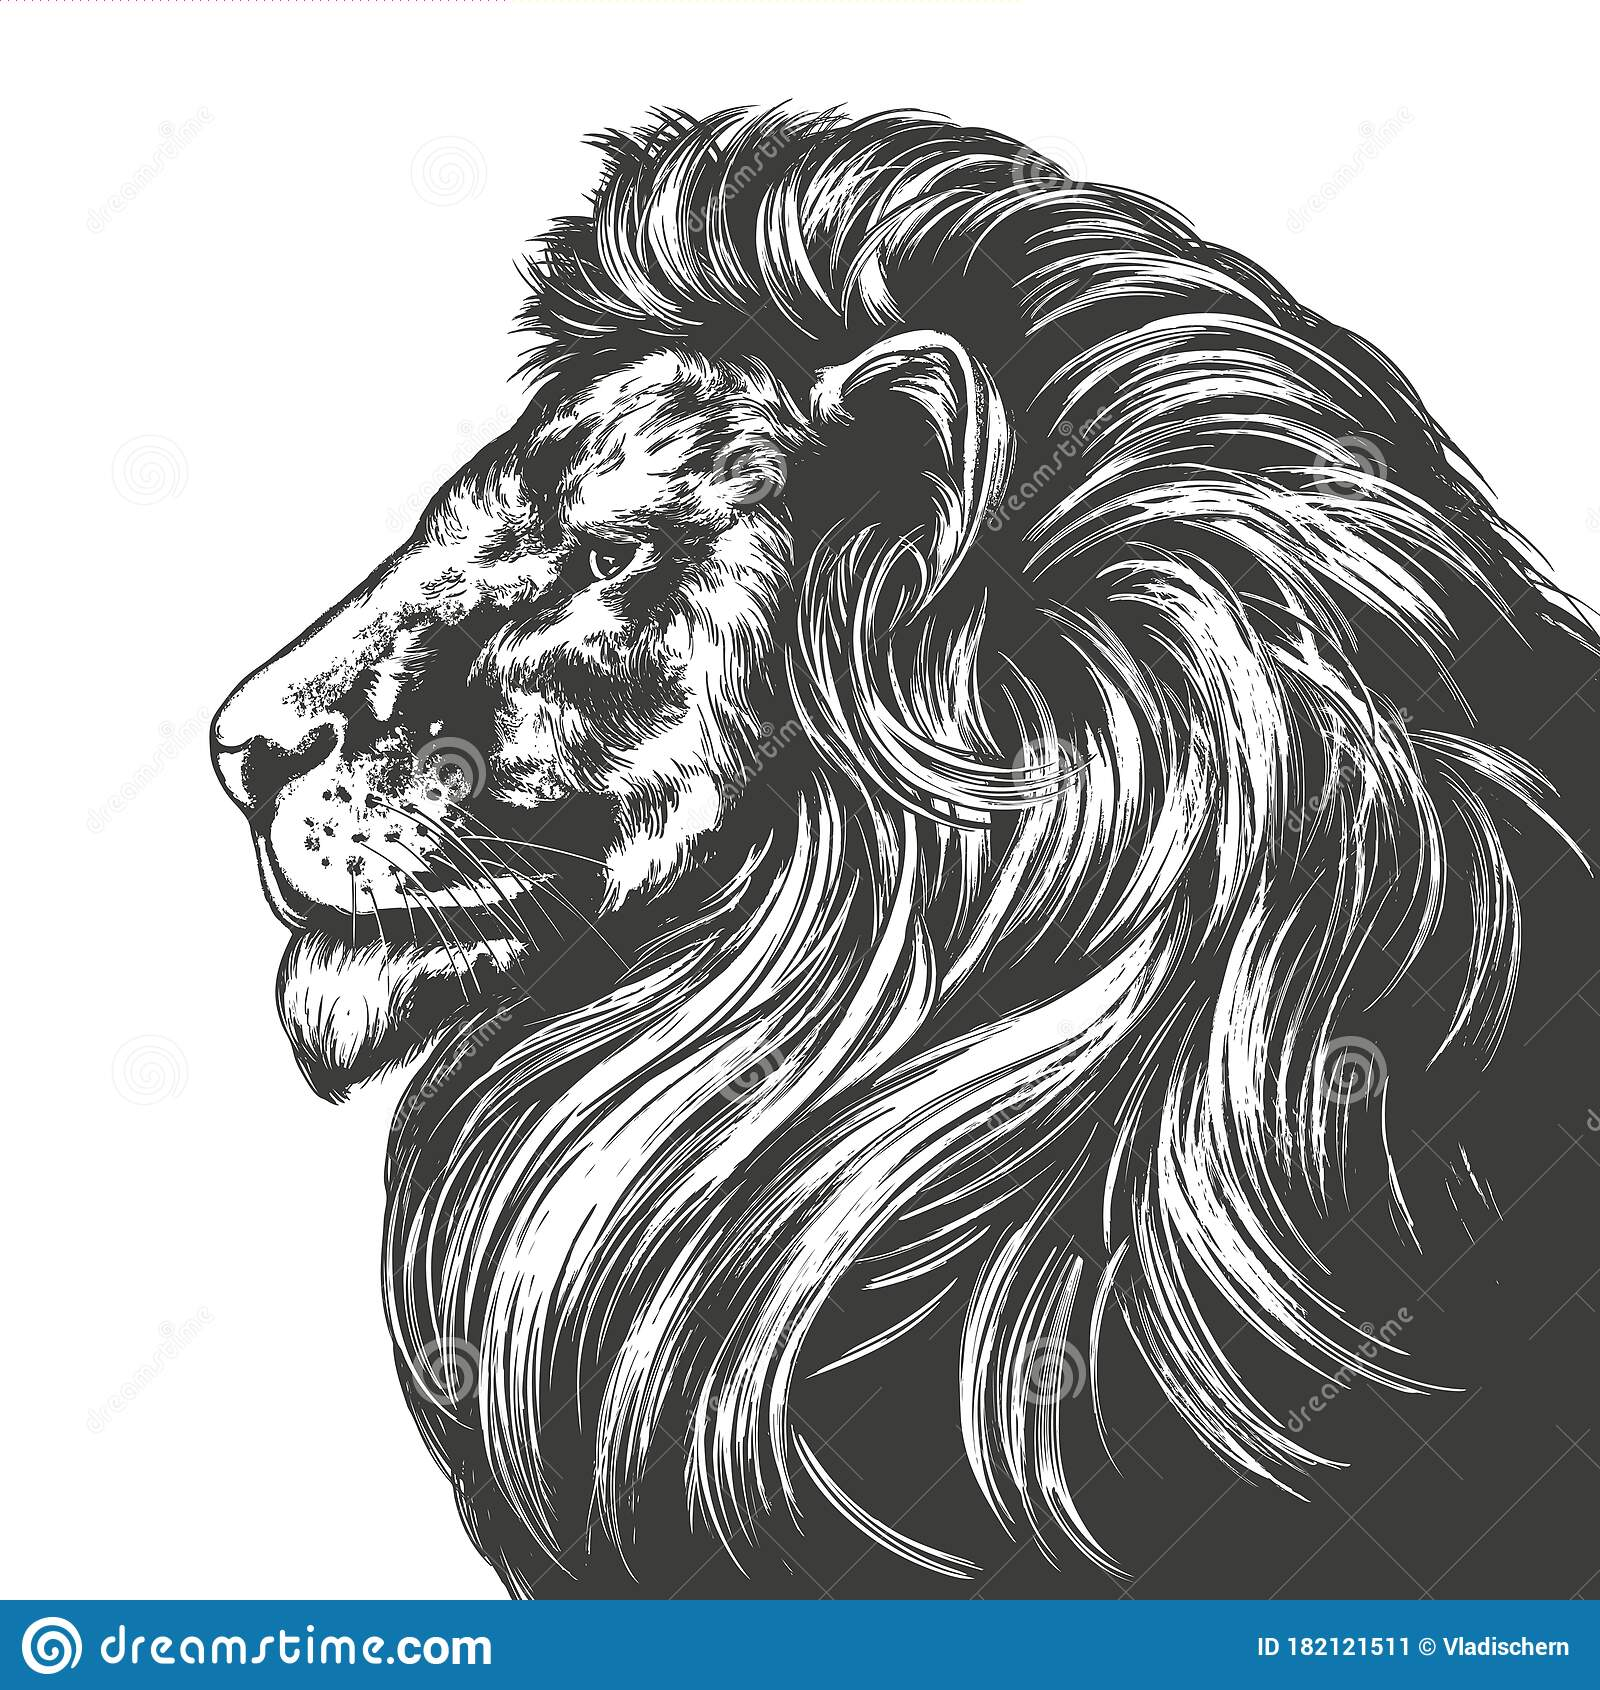 Animal Lion King Of Beasts Hand Drawn Vector Illustration Realistic Sketch Stock Vector Illustration Of Animal Black 182121511 Lion face outlined front free icon. dreamstime com